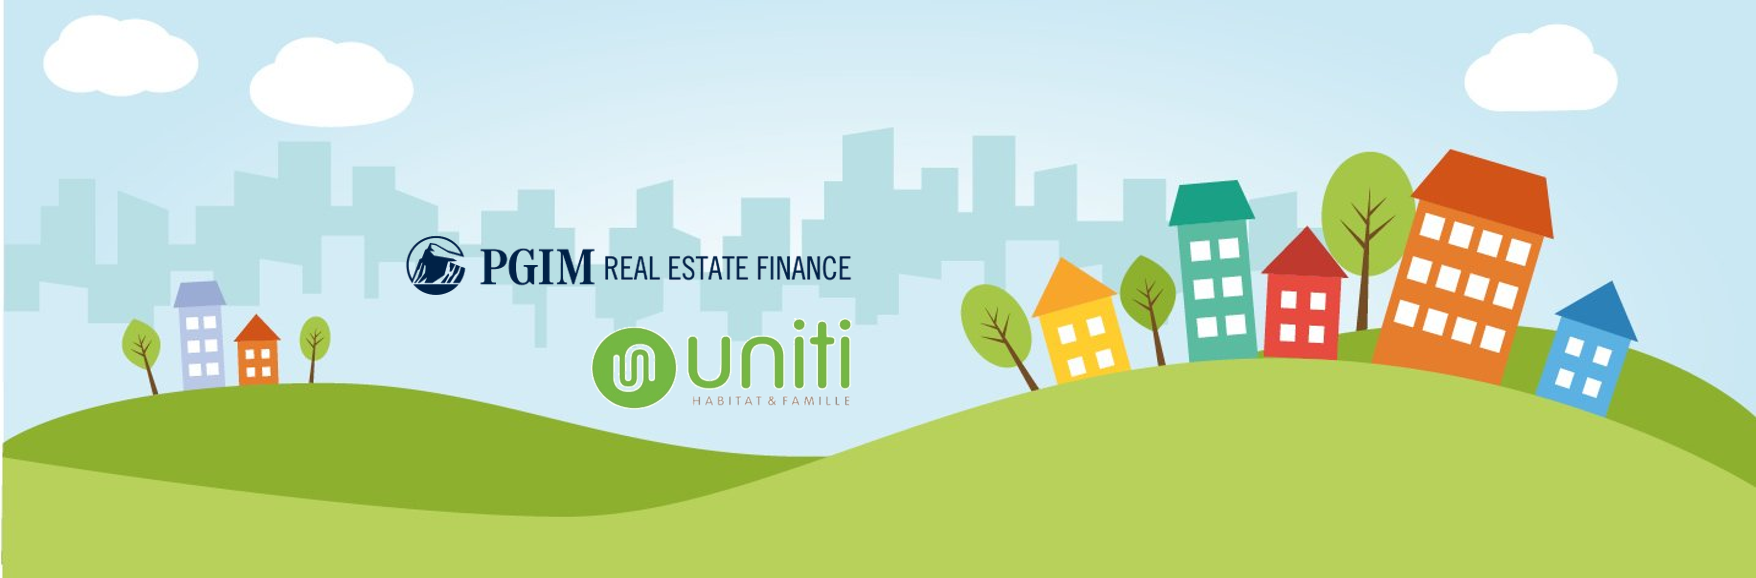 Social Housing Developer Groupe UNITI Receives Funding from the American Real Estate Investor PGIM Real Estate